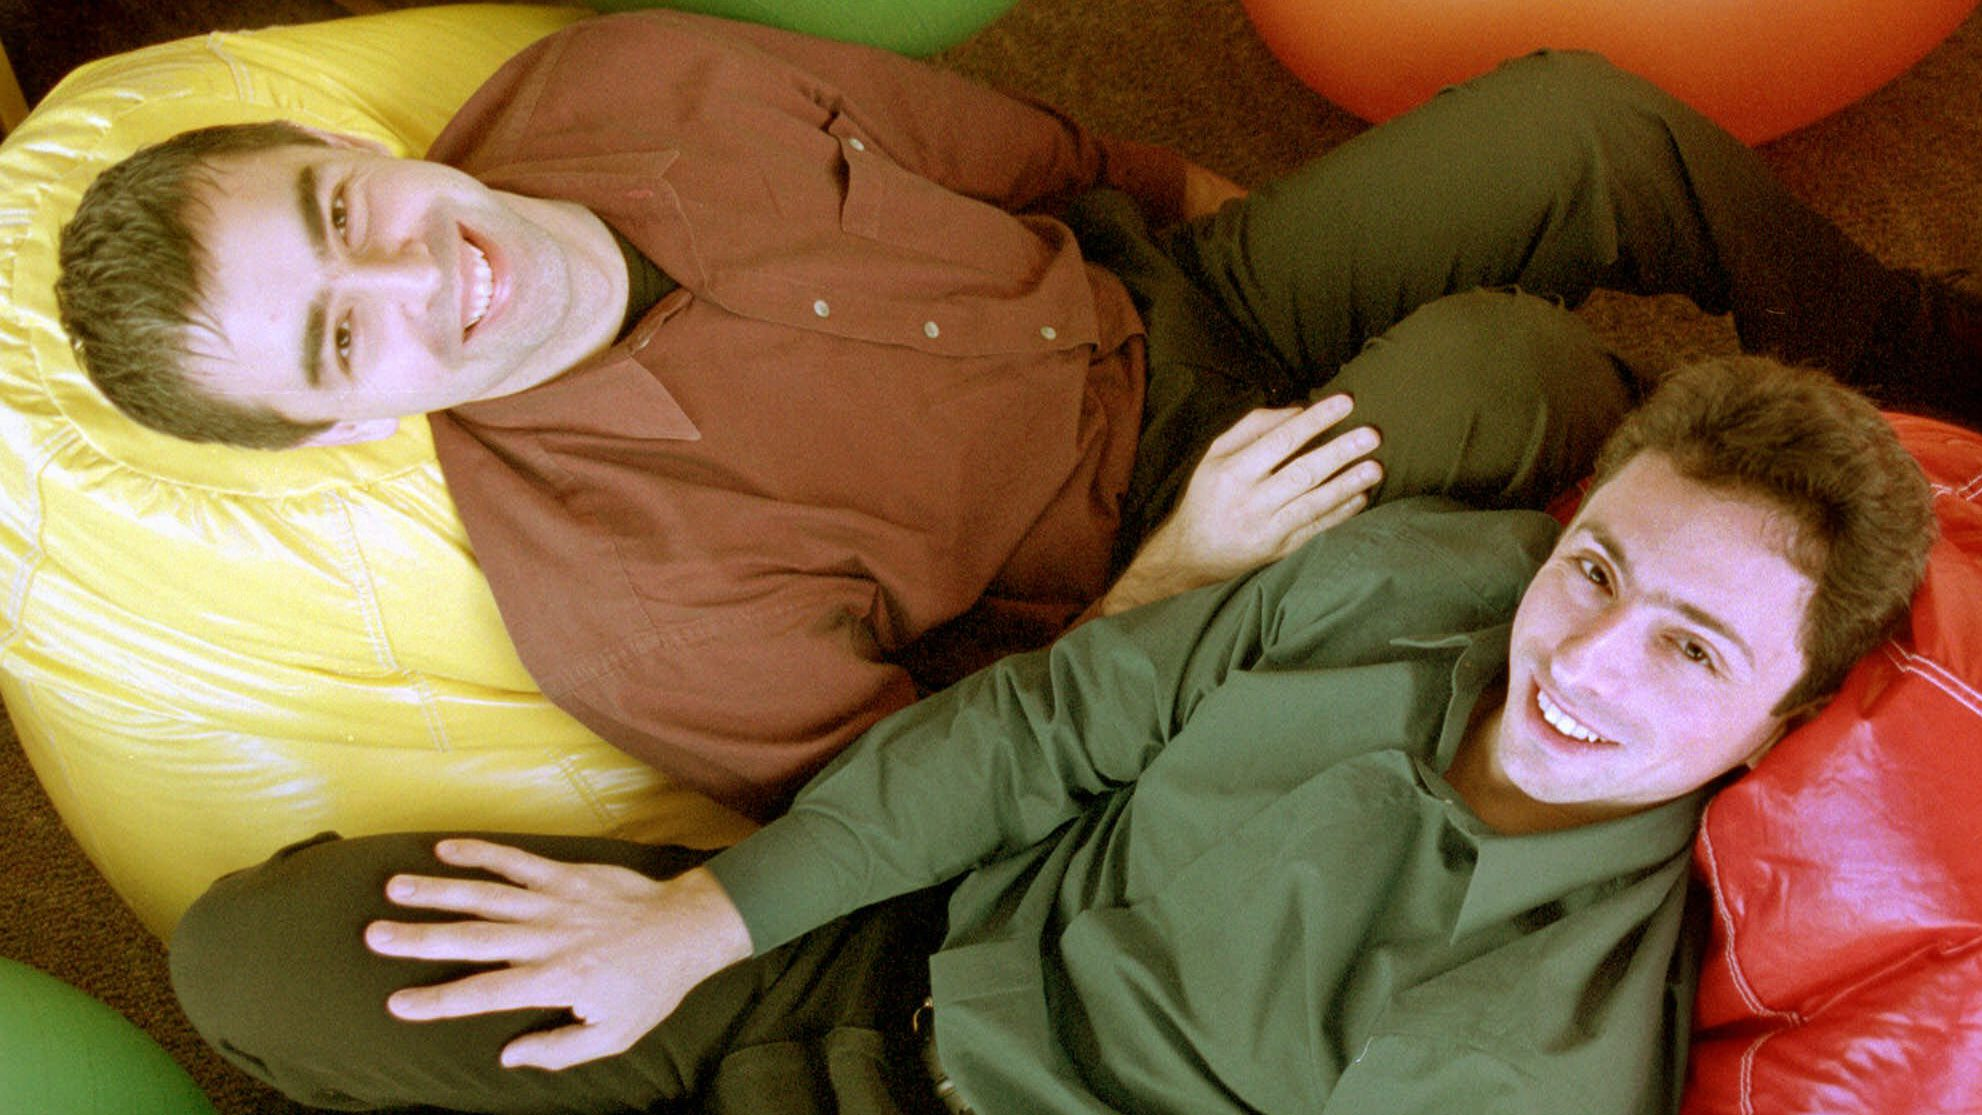 Google's co-founders, CEO Larry Page, left, and Chairman Sergey Brin, rest on bean bags at Google's headquarters on Friday, Nov. 11, 2000, in Mountain View, Calif.   Google  which replaced Inktomi as Yahoo's search engine in June  is one of the few search engines that shuns pay-for-position and pay-for-inclusion. Google executives say those formulas make it more difficult for people to find potentially valuable information, like cancer research, on the Web.     ``We have taken a very strong stance that our search results represent our editorial integrity,'' said Google CEO Larry Page.